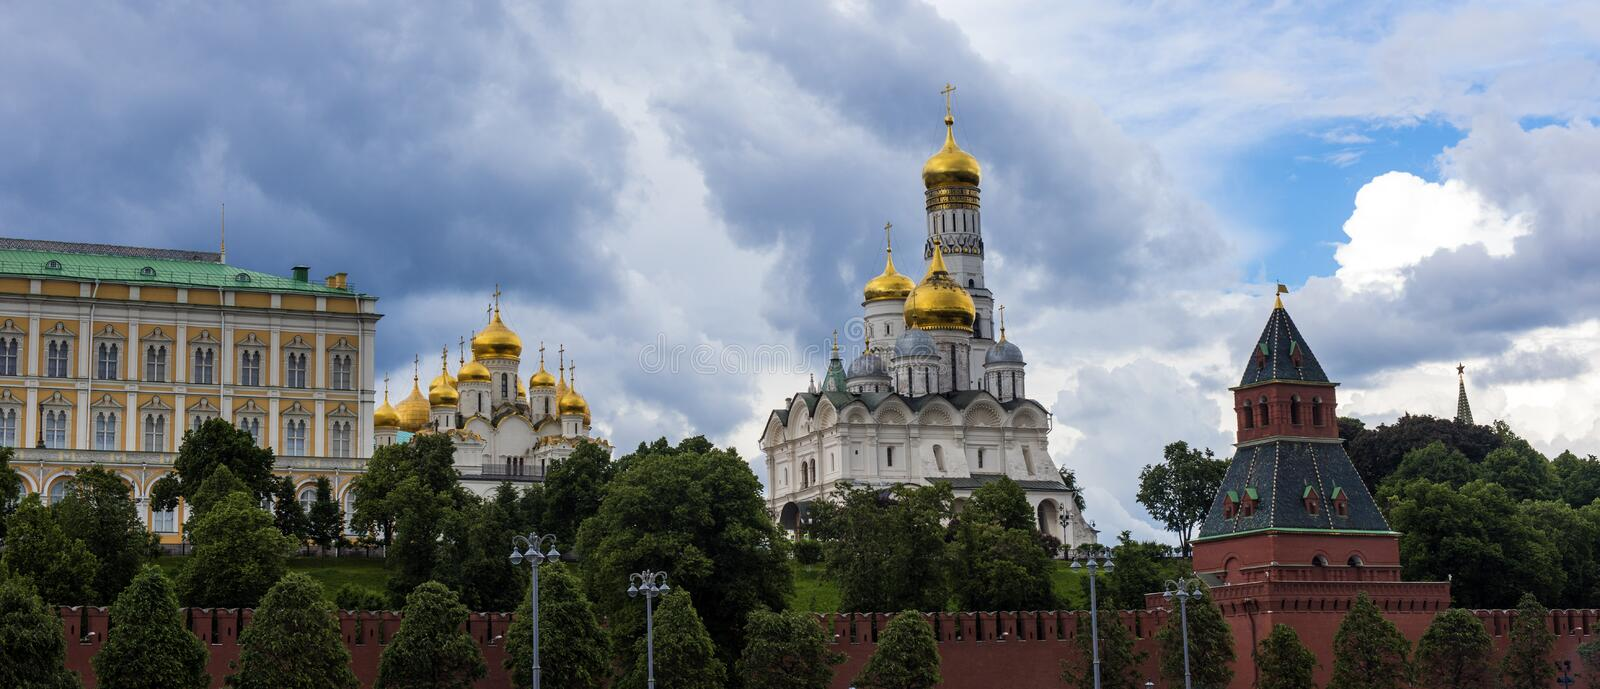 Churches and cathedrals in Moscow Kremlin. Kremlin Embankment in Moscow, Russia. royalty free stock images